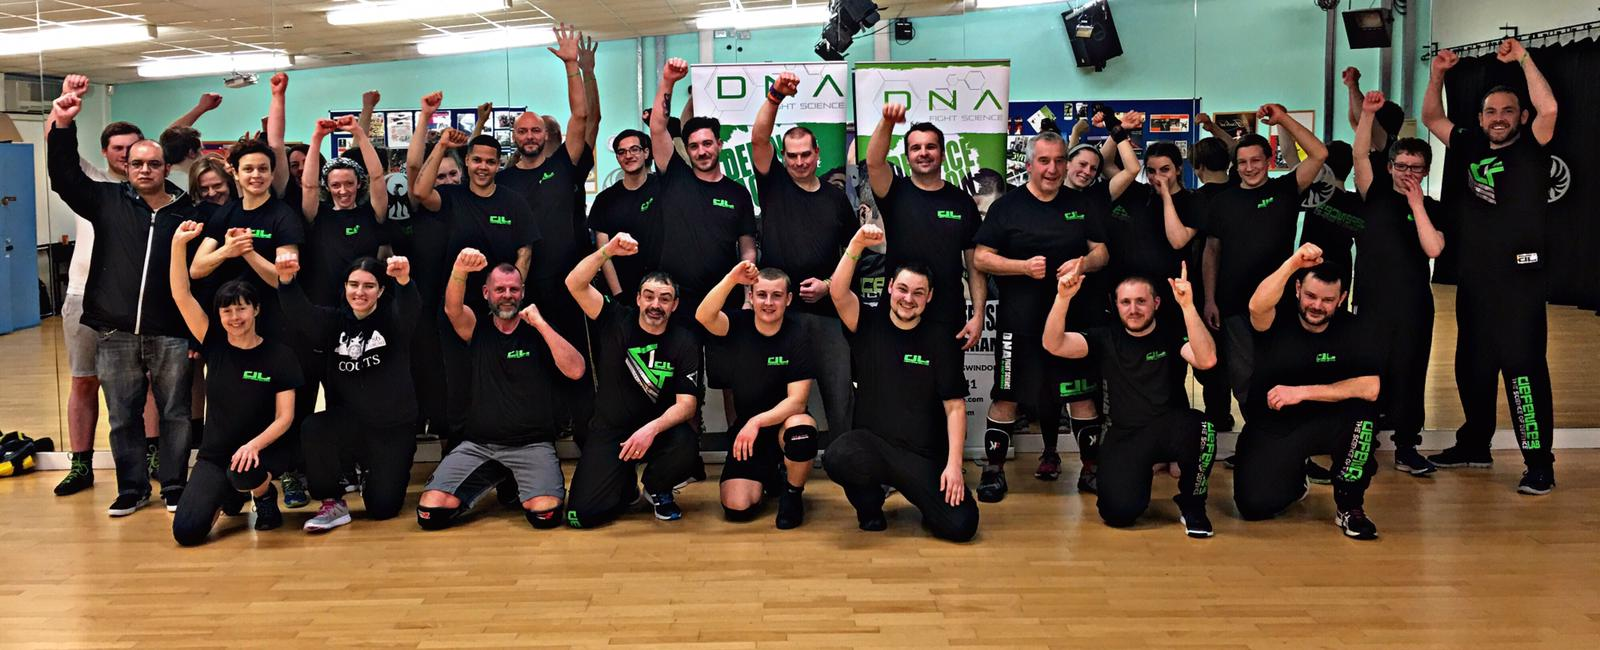 Defence Lab Swindon, Martial Arts and fitness